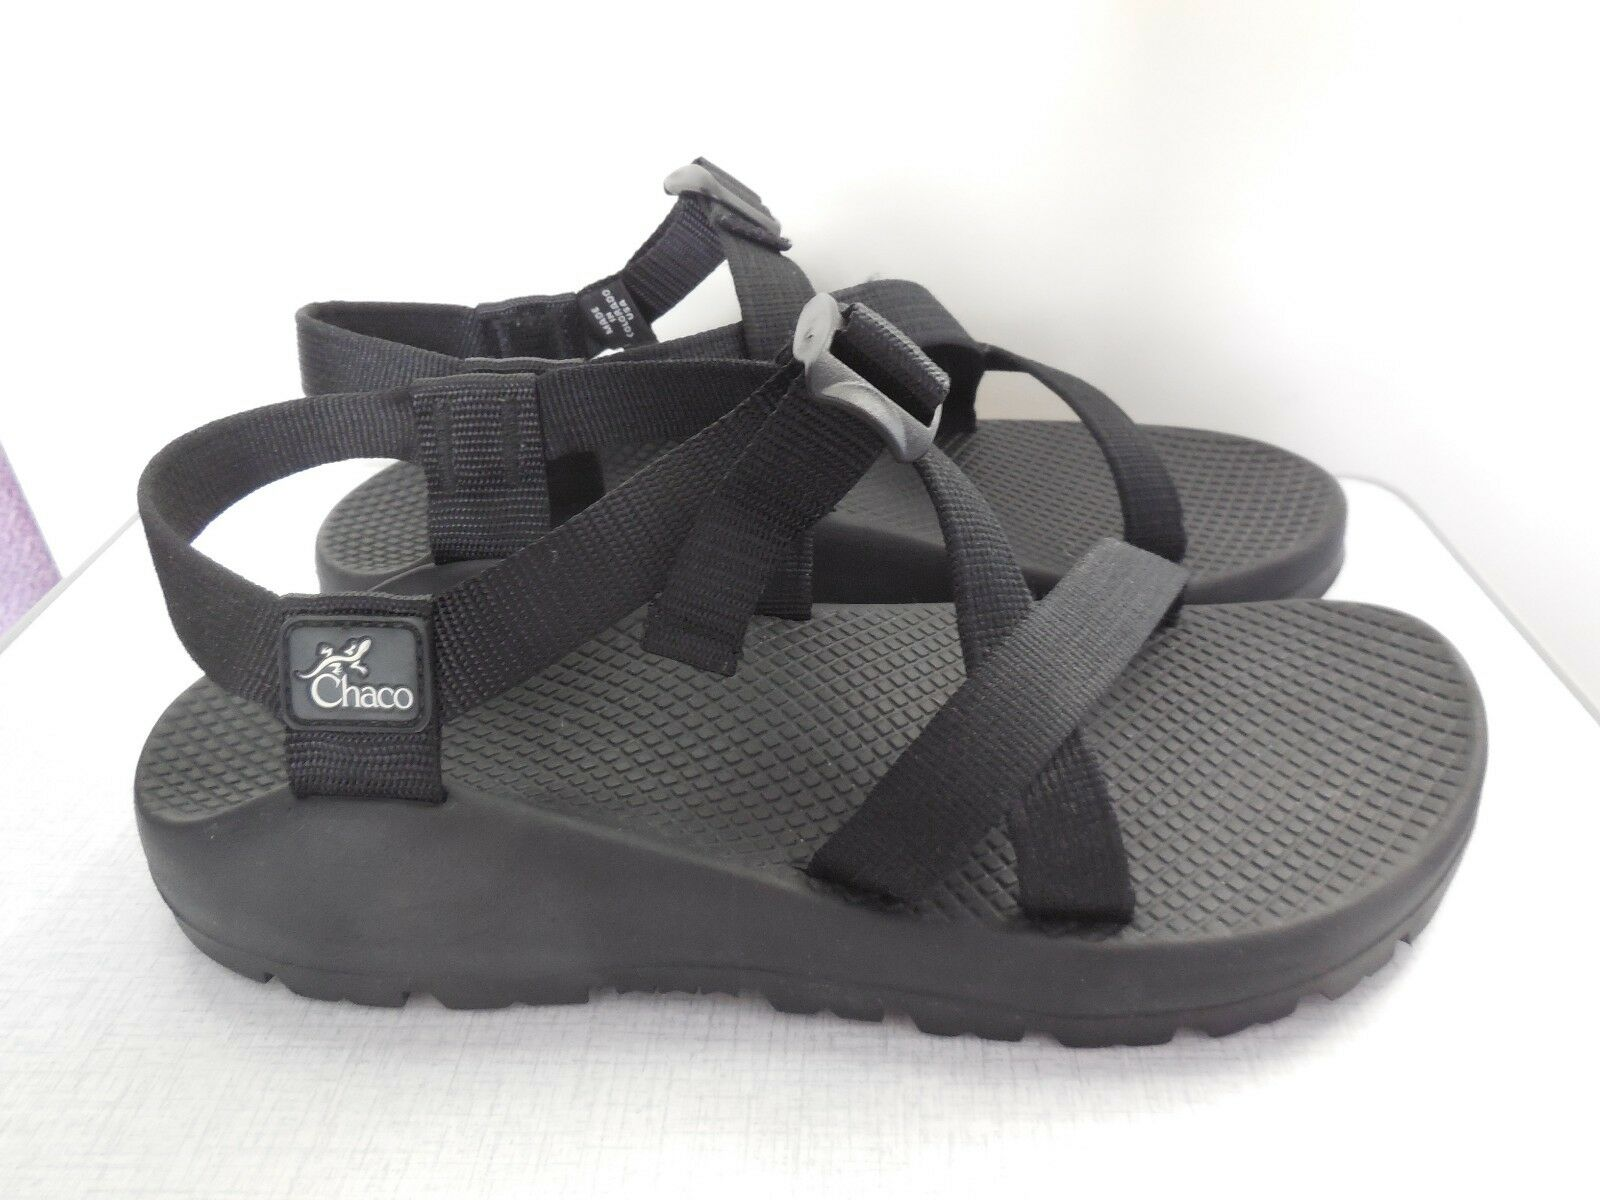 Authentic Chaco sandals w Lizard logo, donna Dimensione Dimensione Dimensione US 9, made in coloreado, USA 4db22d